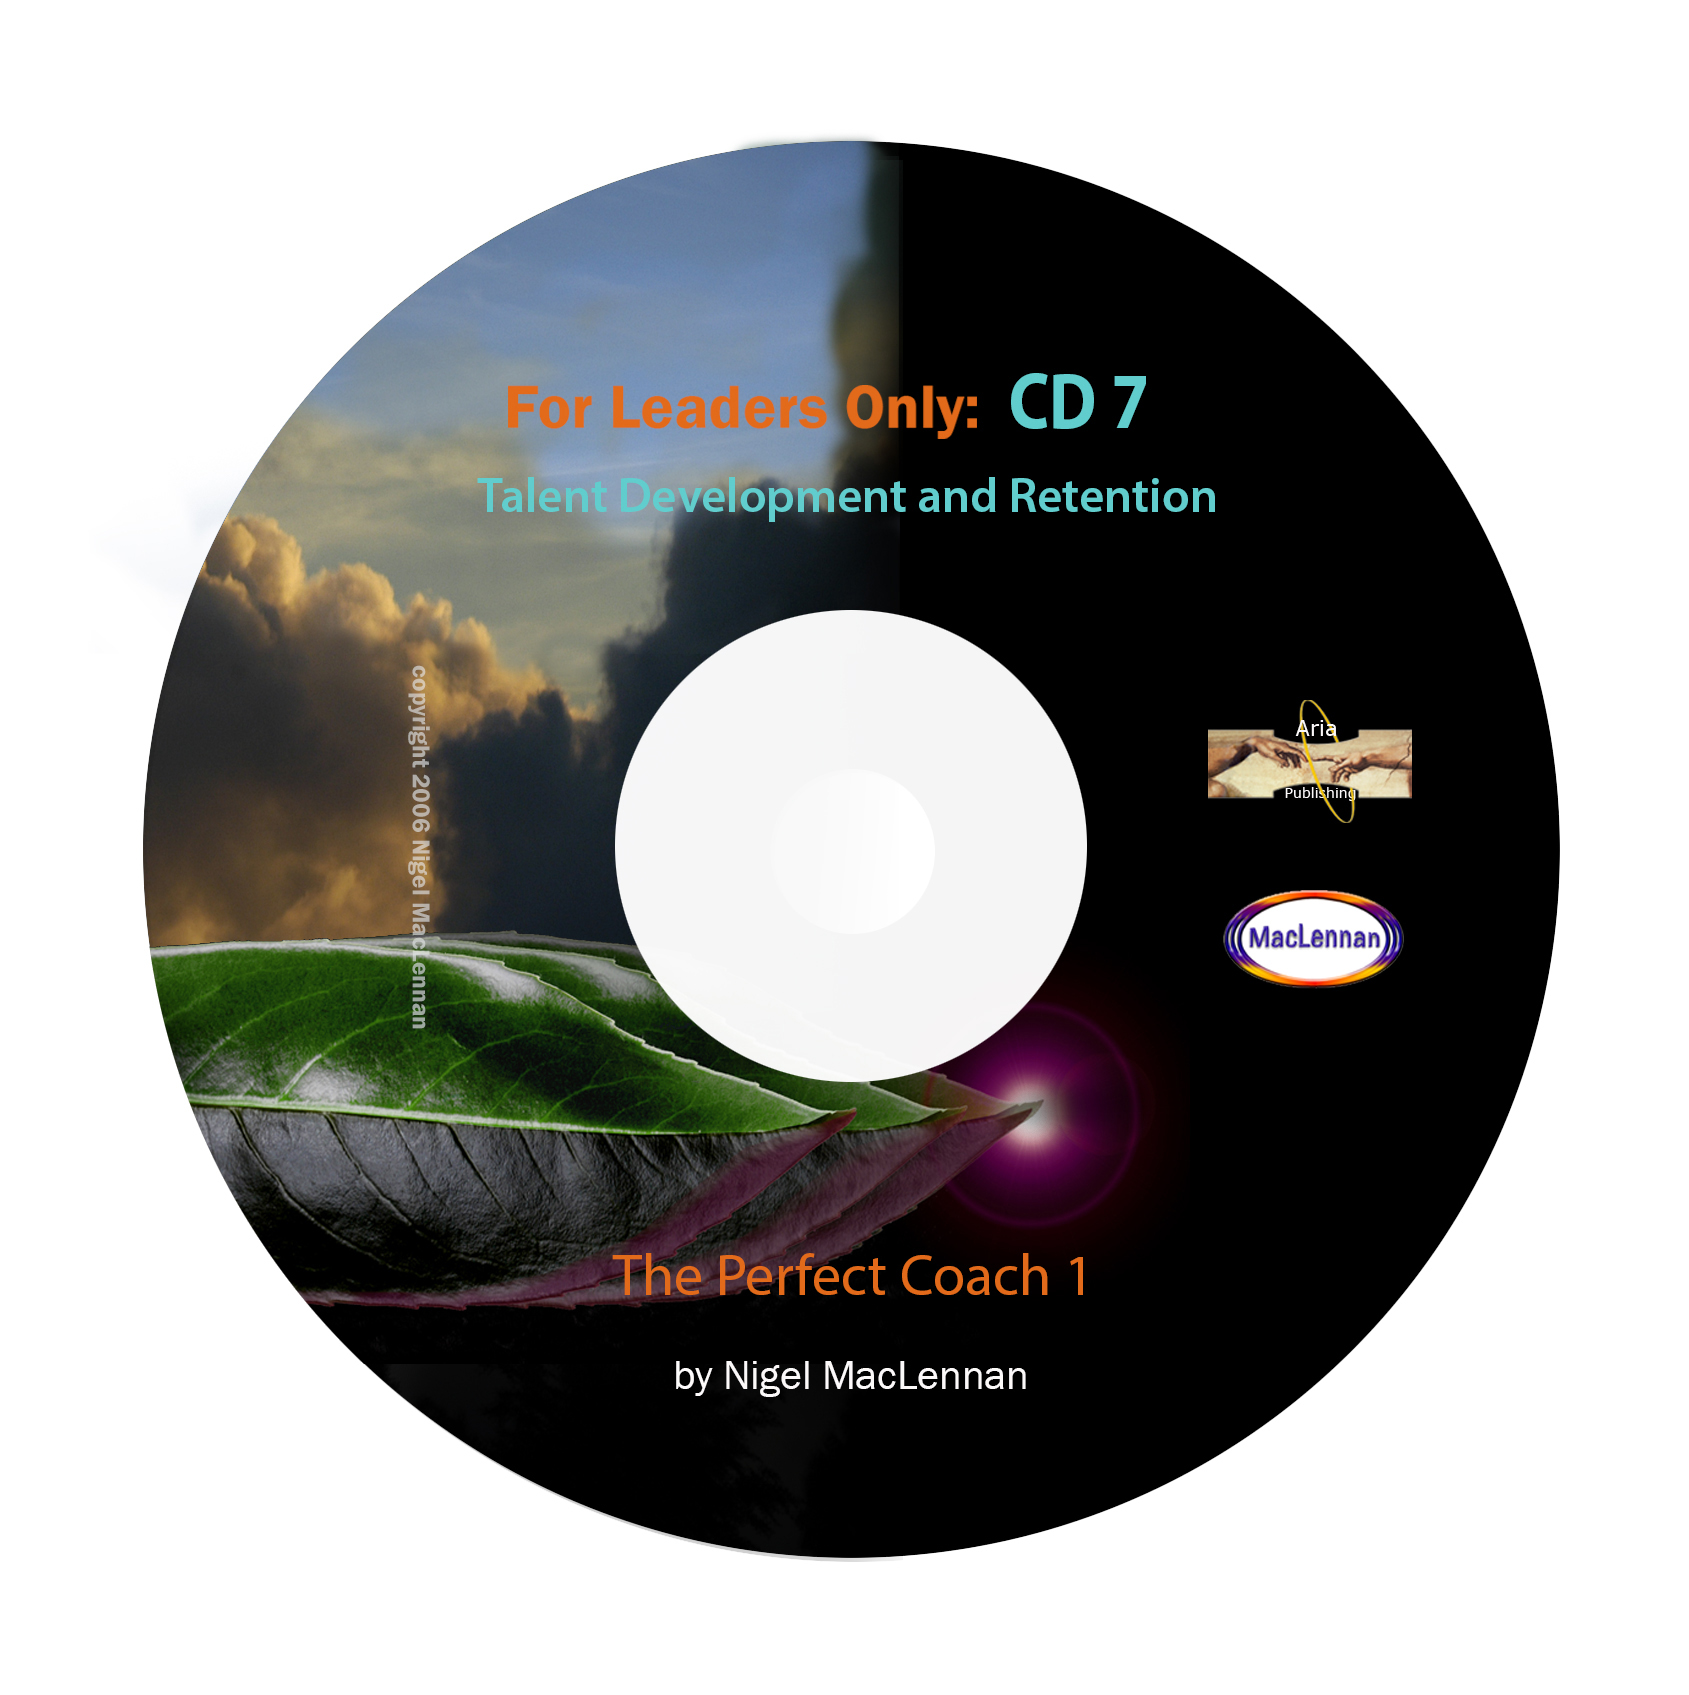 For Leaders Only - The Perfect Coach 1 CD